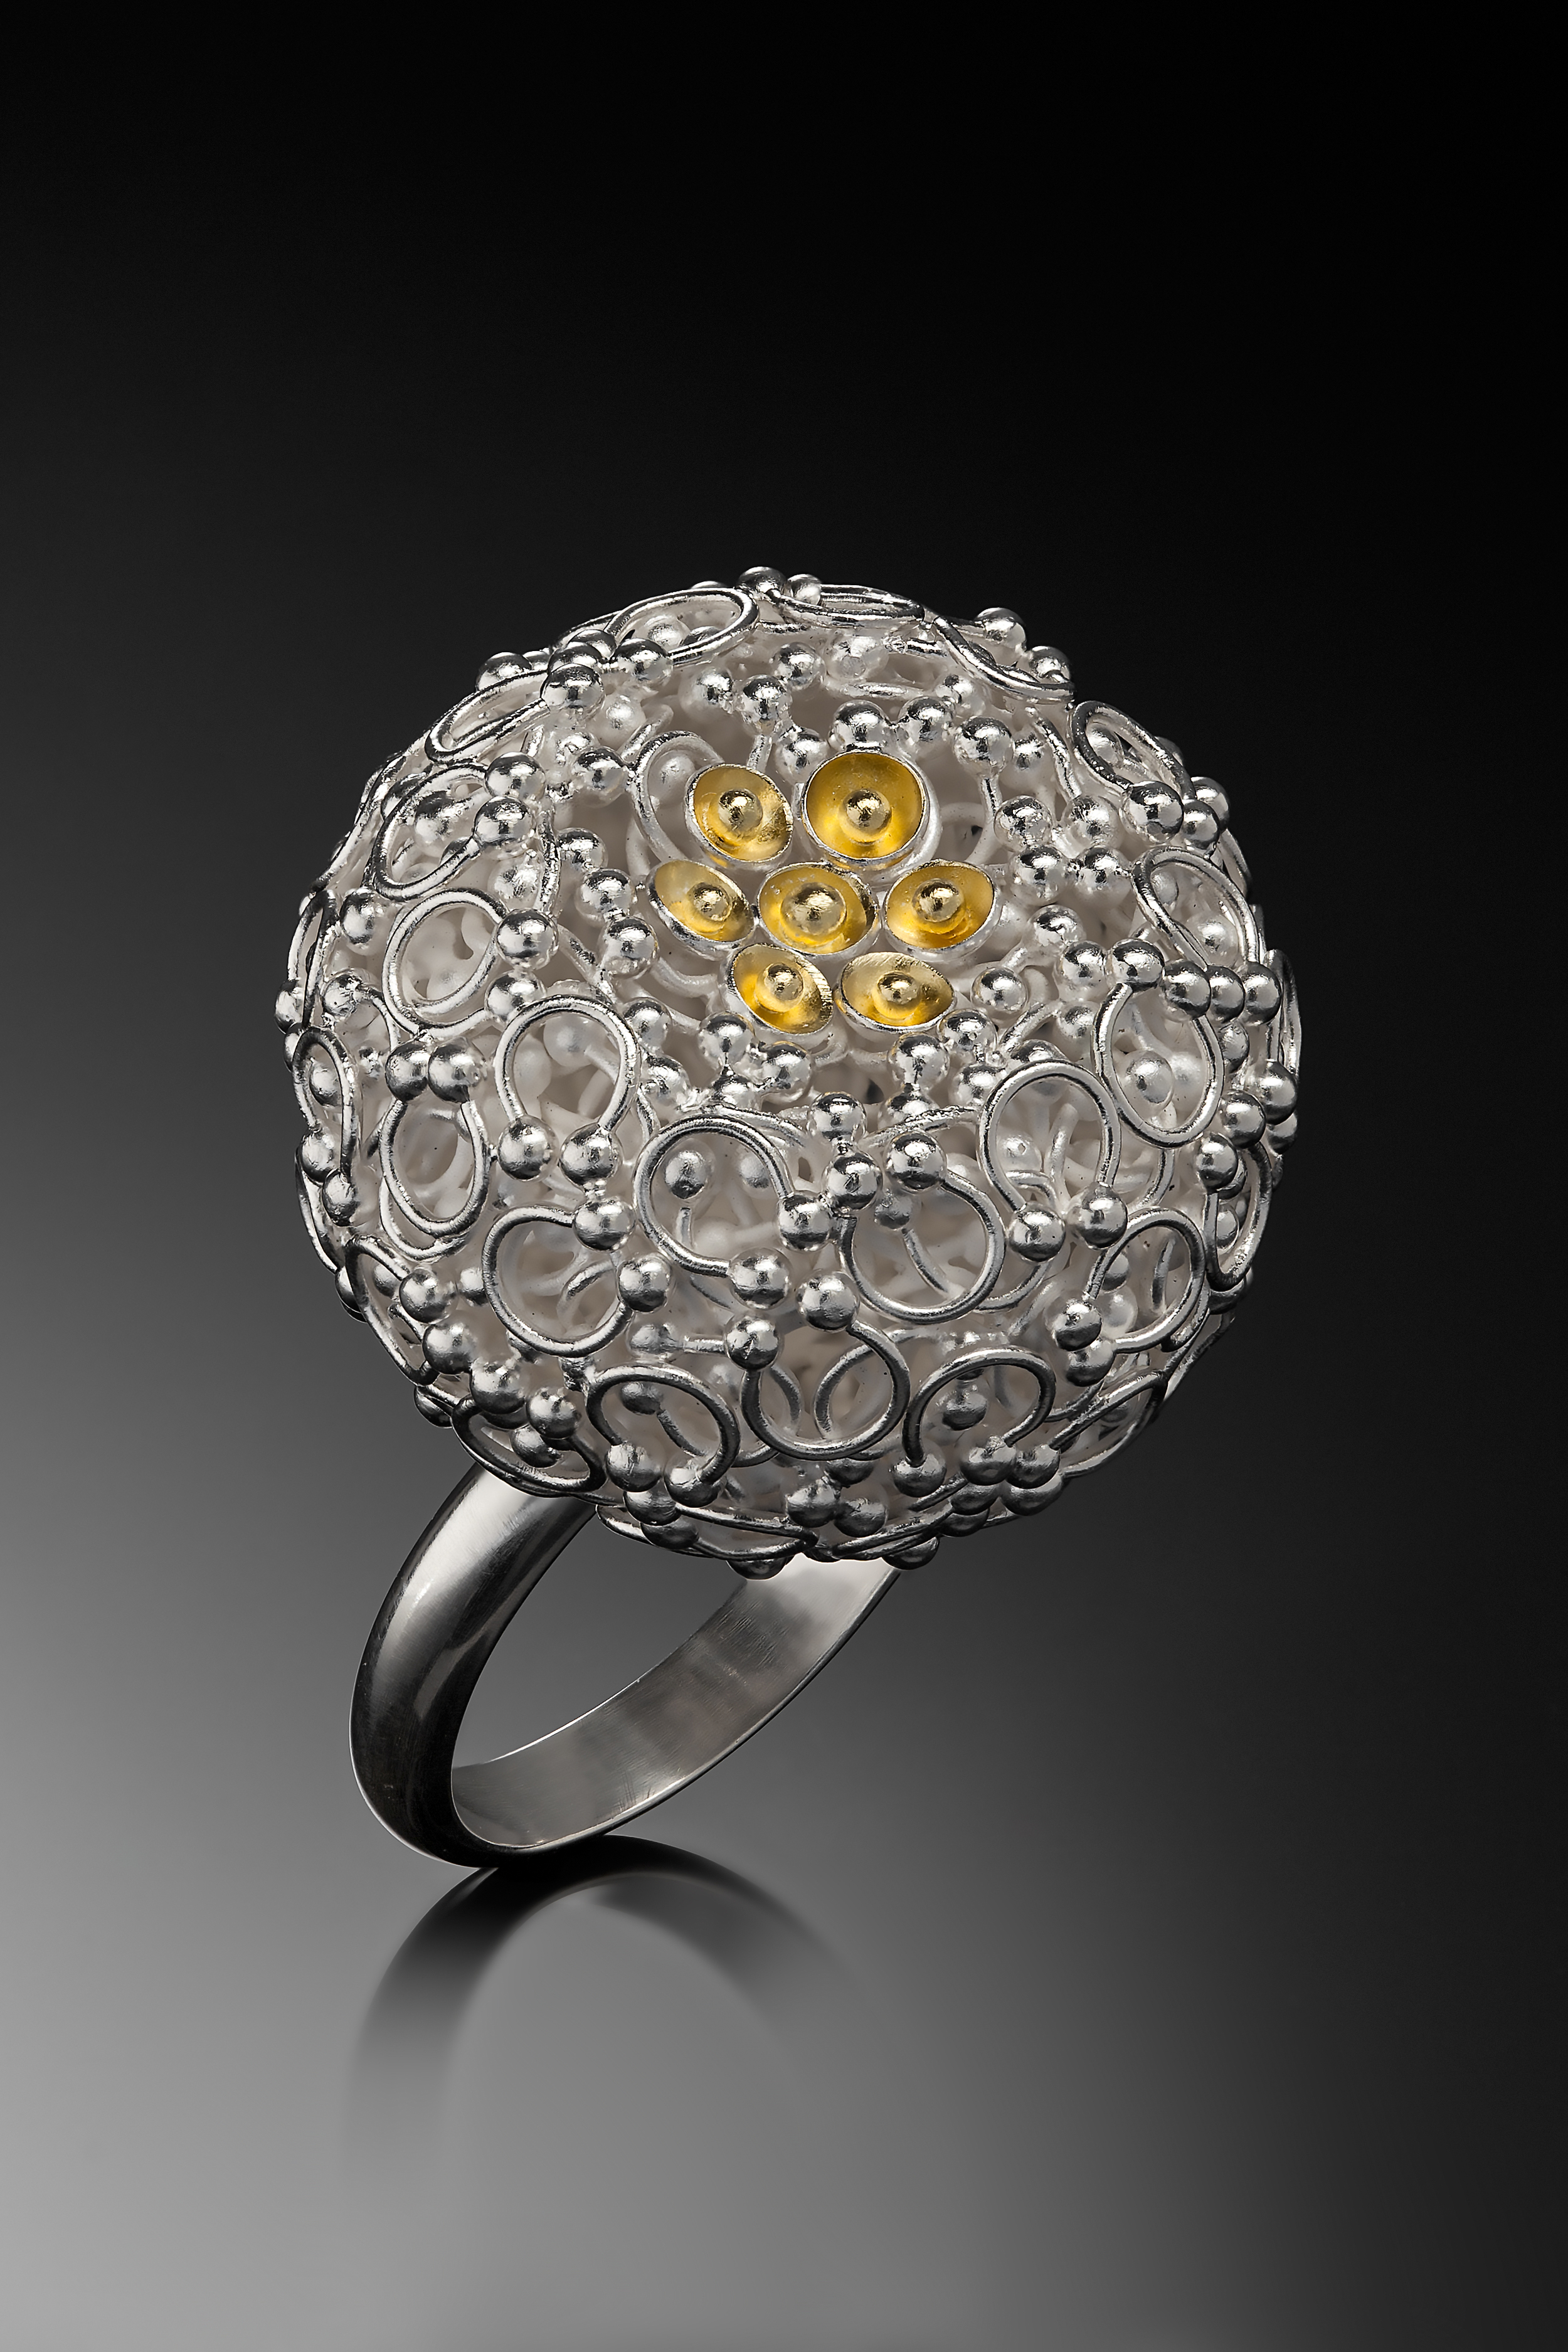 Universe & Me: Ring by Dallae Kang